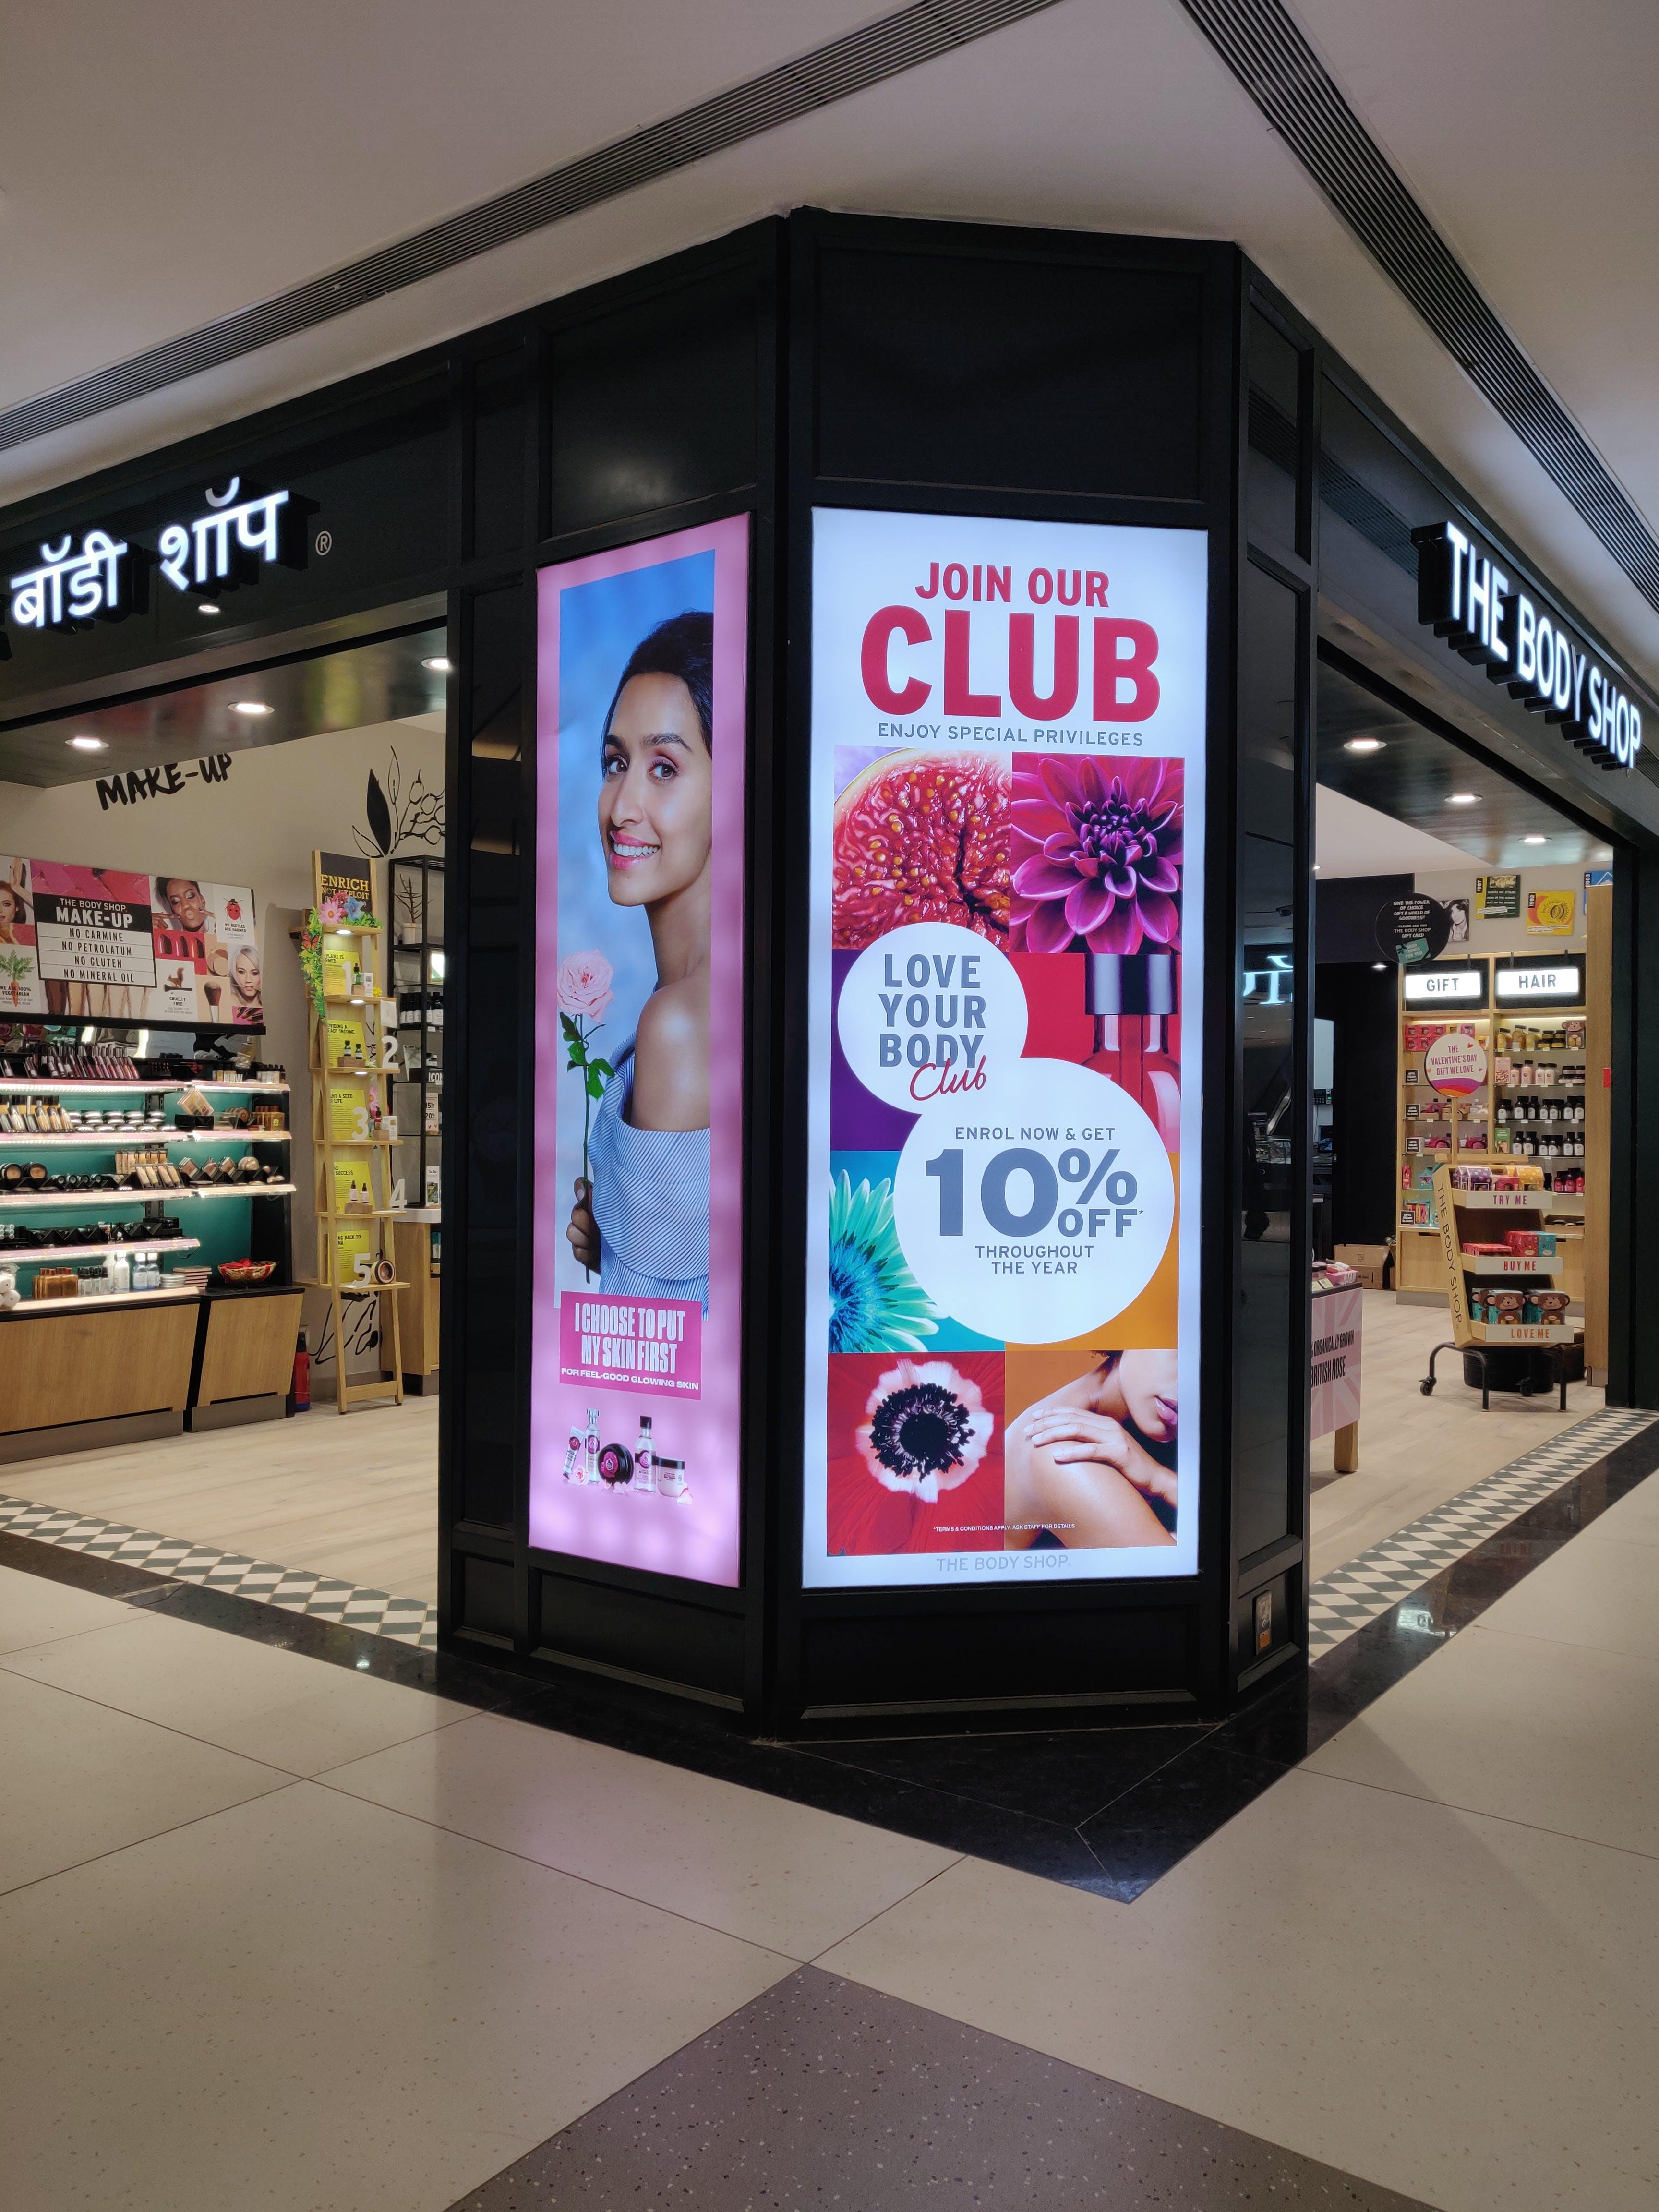 Product,Building,Display advertising,Advertising,Outlet store,Retail,Graphics,Shopping mall,Display window,Signage